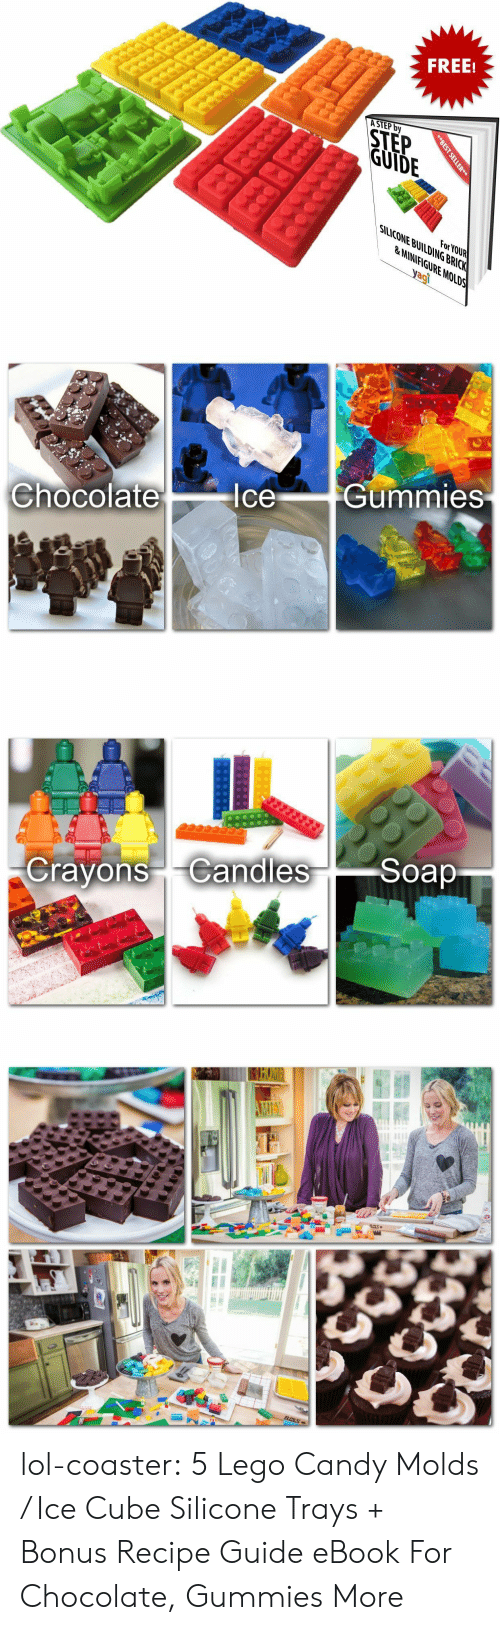 Agi: FREE!  ASTEP by  STEP  GUIDE  For YOUR  SIuCONE BULDING BRICK  LANNIFIGURE MOLDS  agi   Chocolate  IceGummies   rayonsandiesSoap lol-coaster:  5 Lego Candy Molds / Ice Cube Silicone Trays + Bonus Recipe Guide eBook For Chocolate, Gummies  More